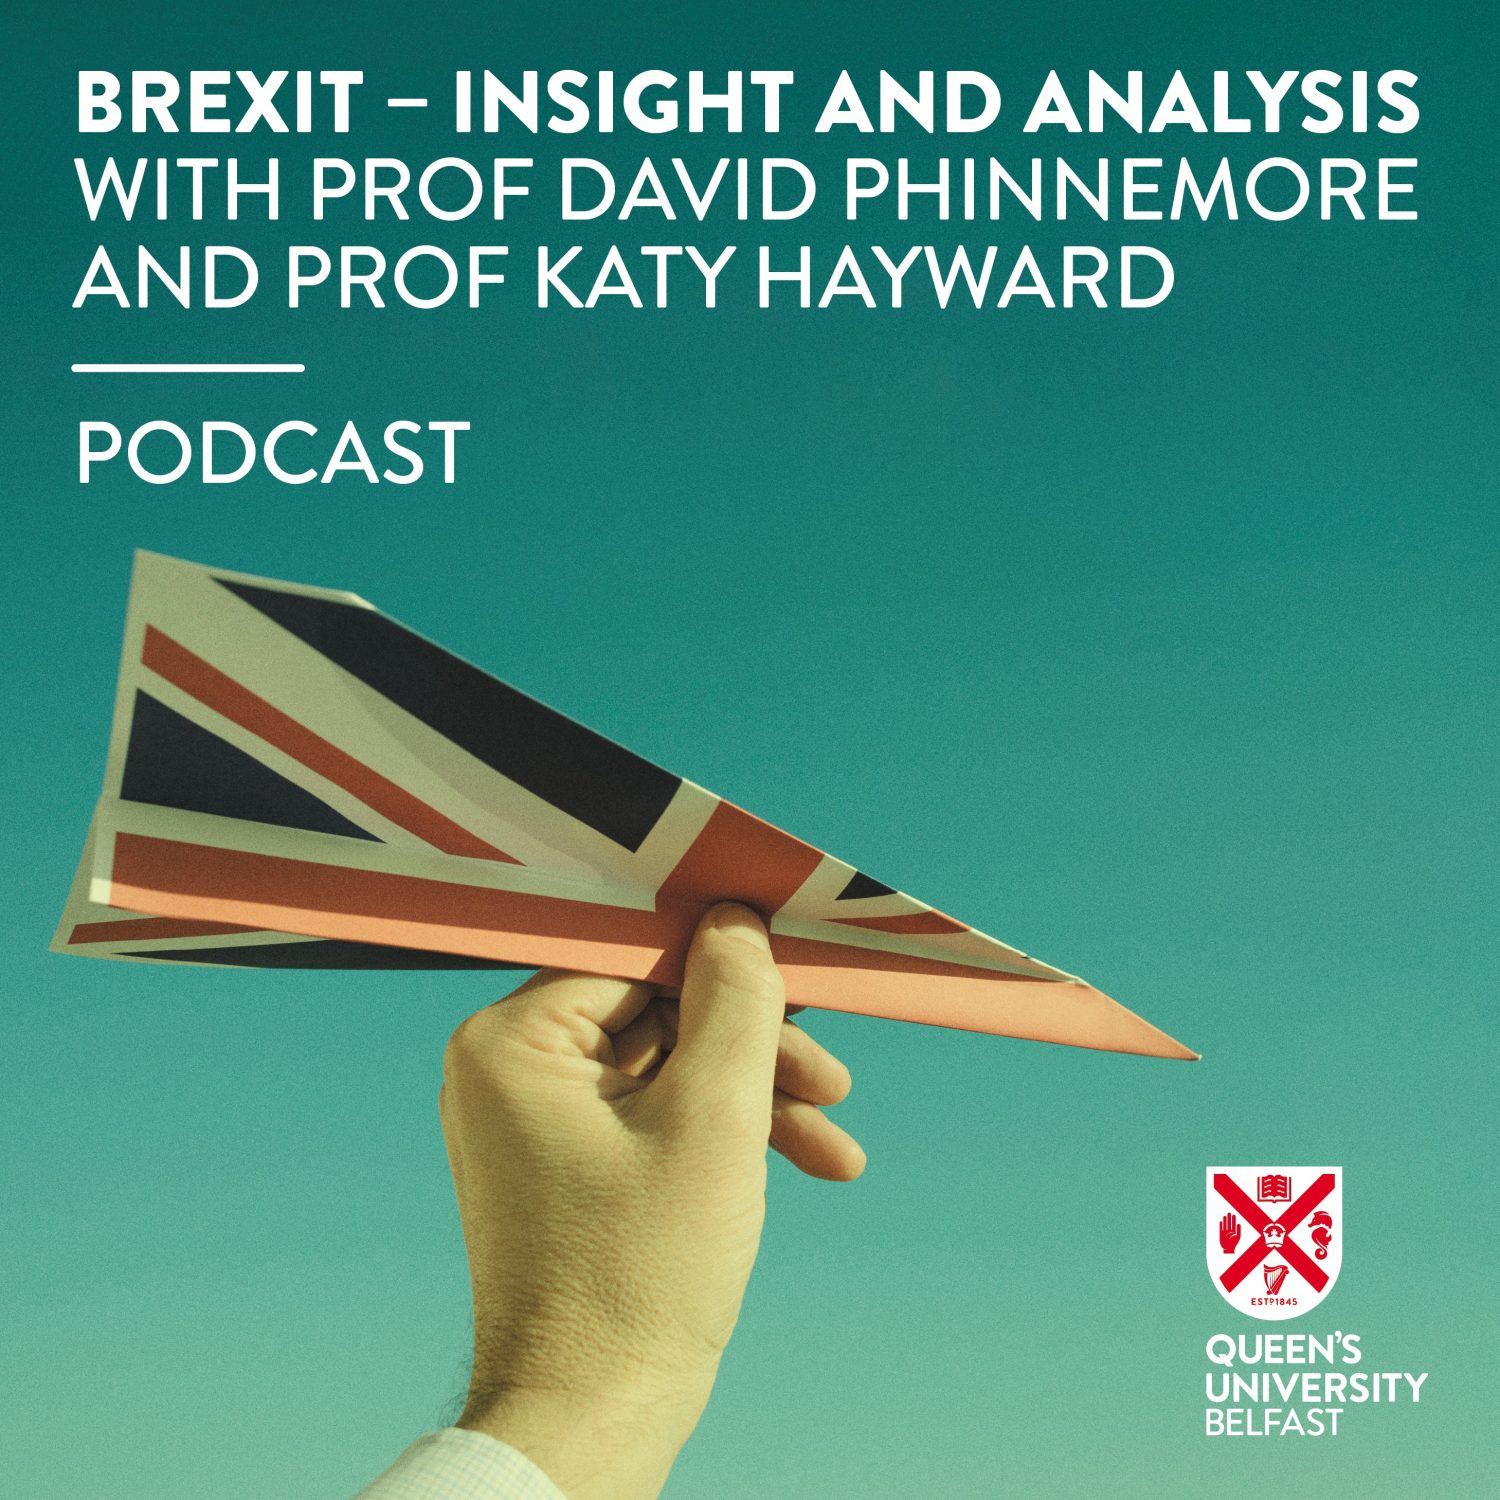 Brexit – Insight and Analysis